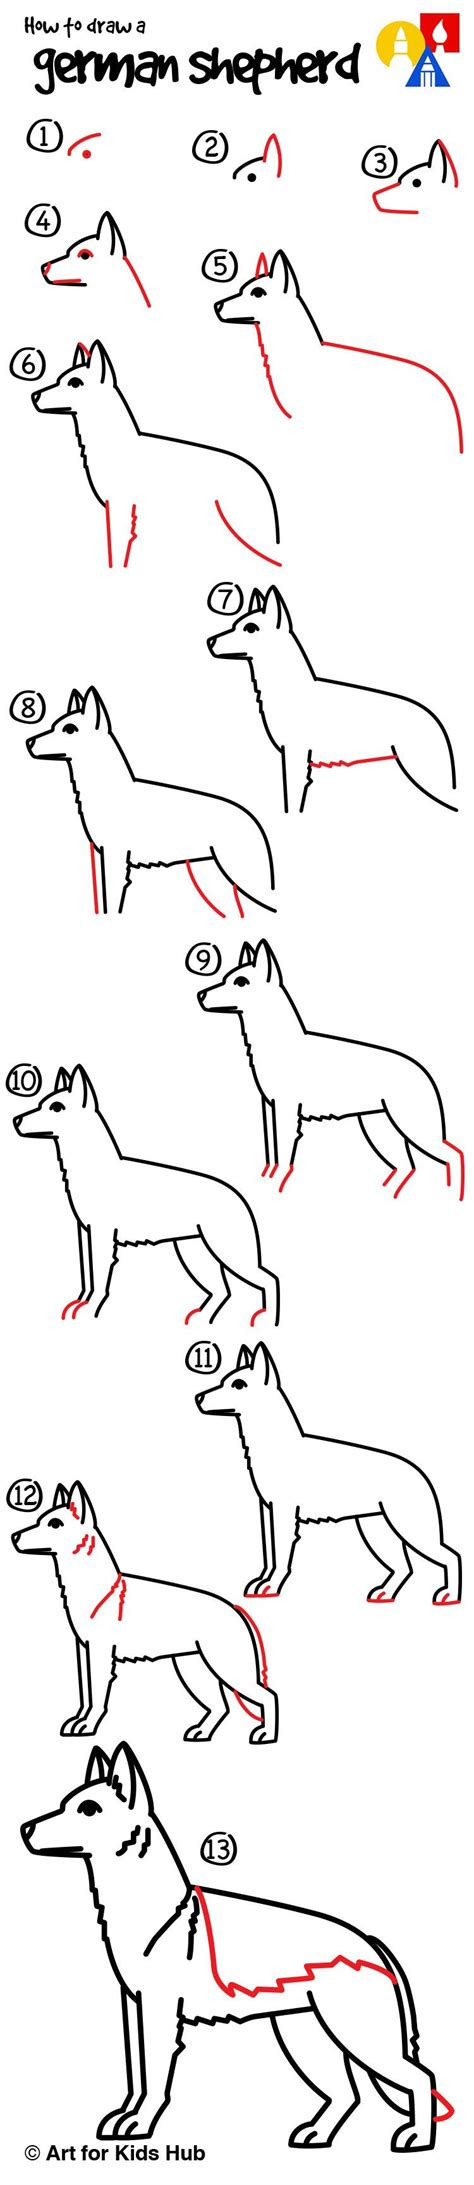 how to german shepherd how to draw a german shepherd for hub german shepherds learning and